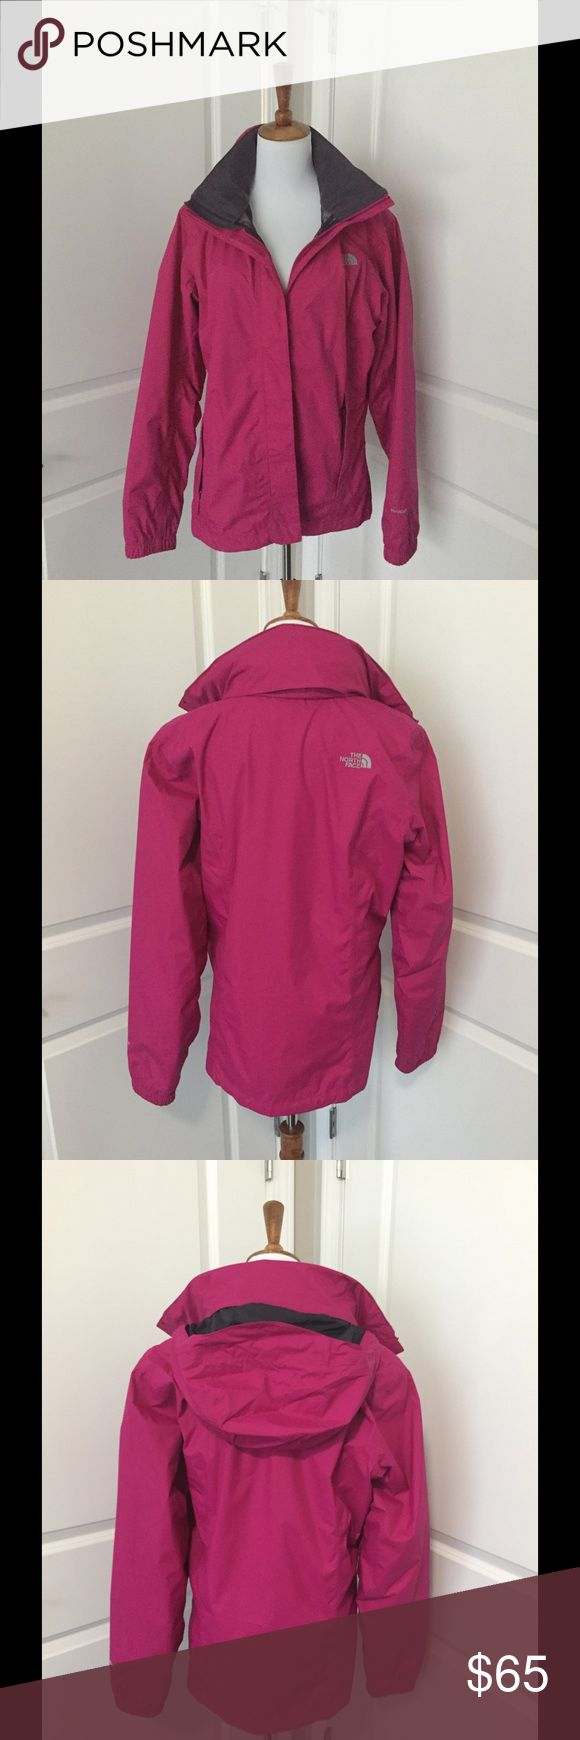 The North Face Ladies Jacket Gently loved rain jacket light weight 100% nylon The North Face Jackets & Coats